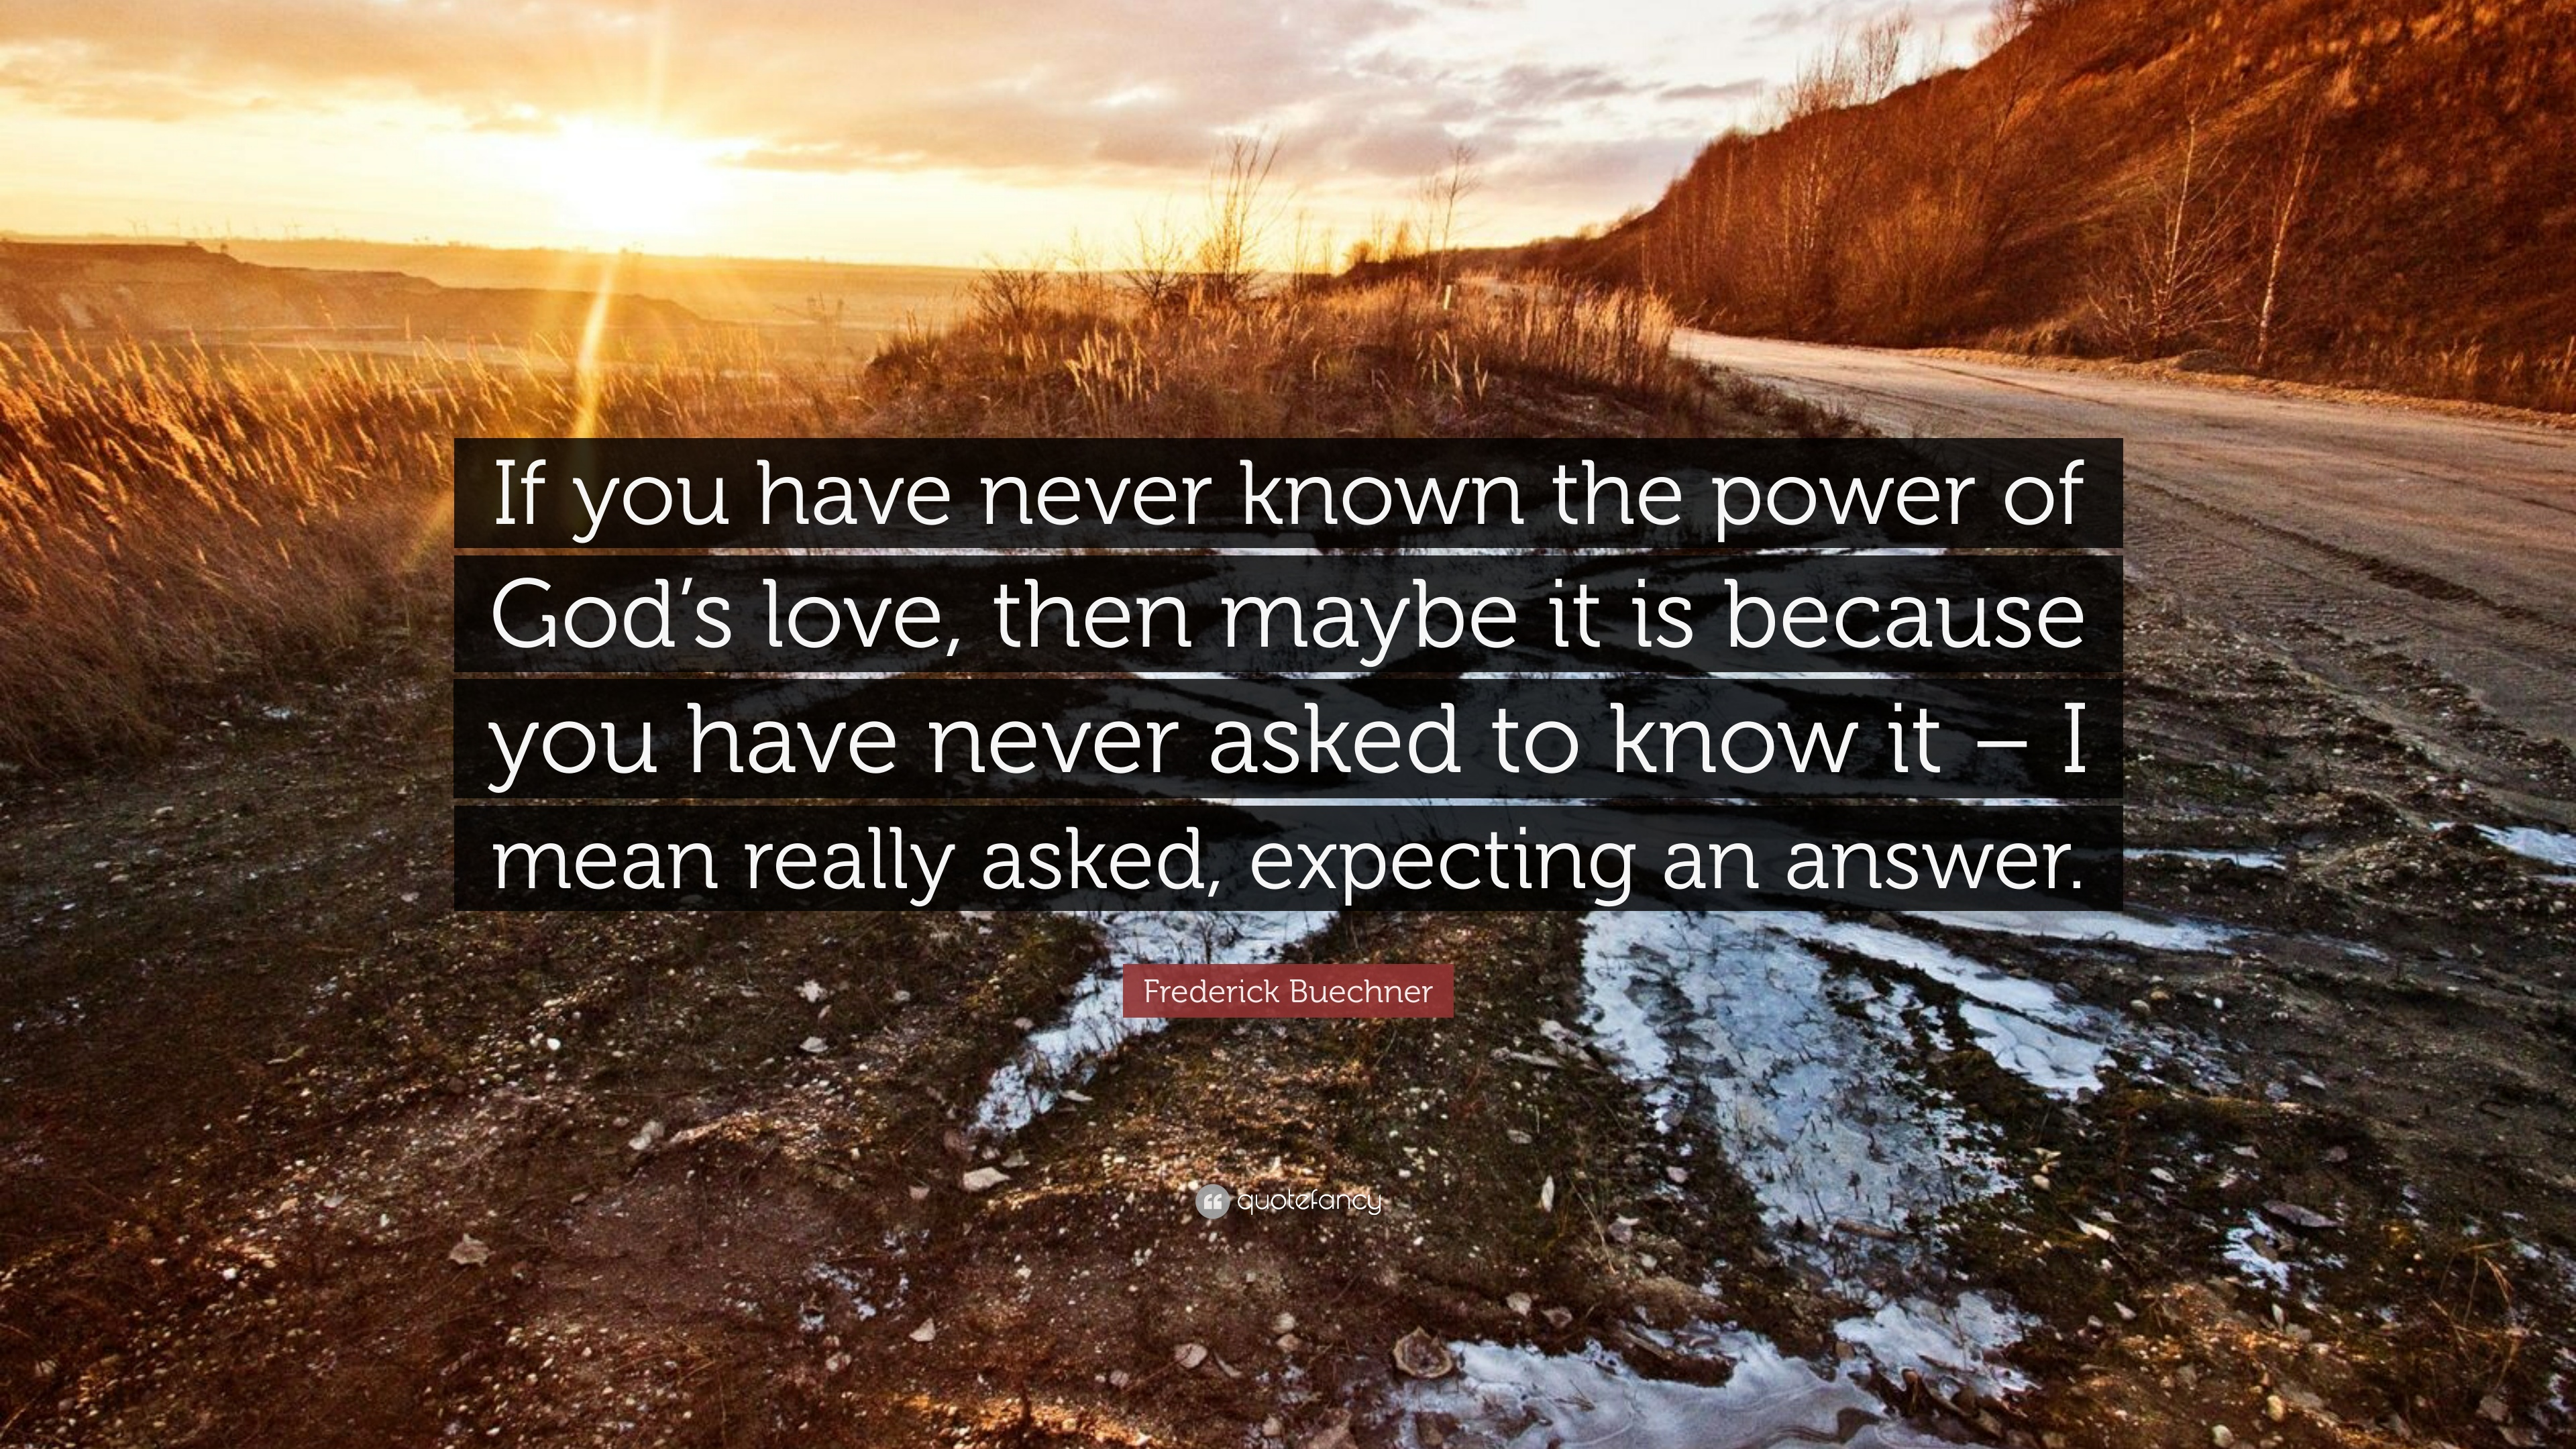 Frederick Buechner Quote If You Have Never Known The Power Of